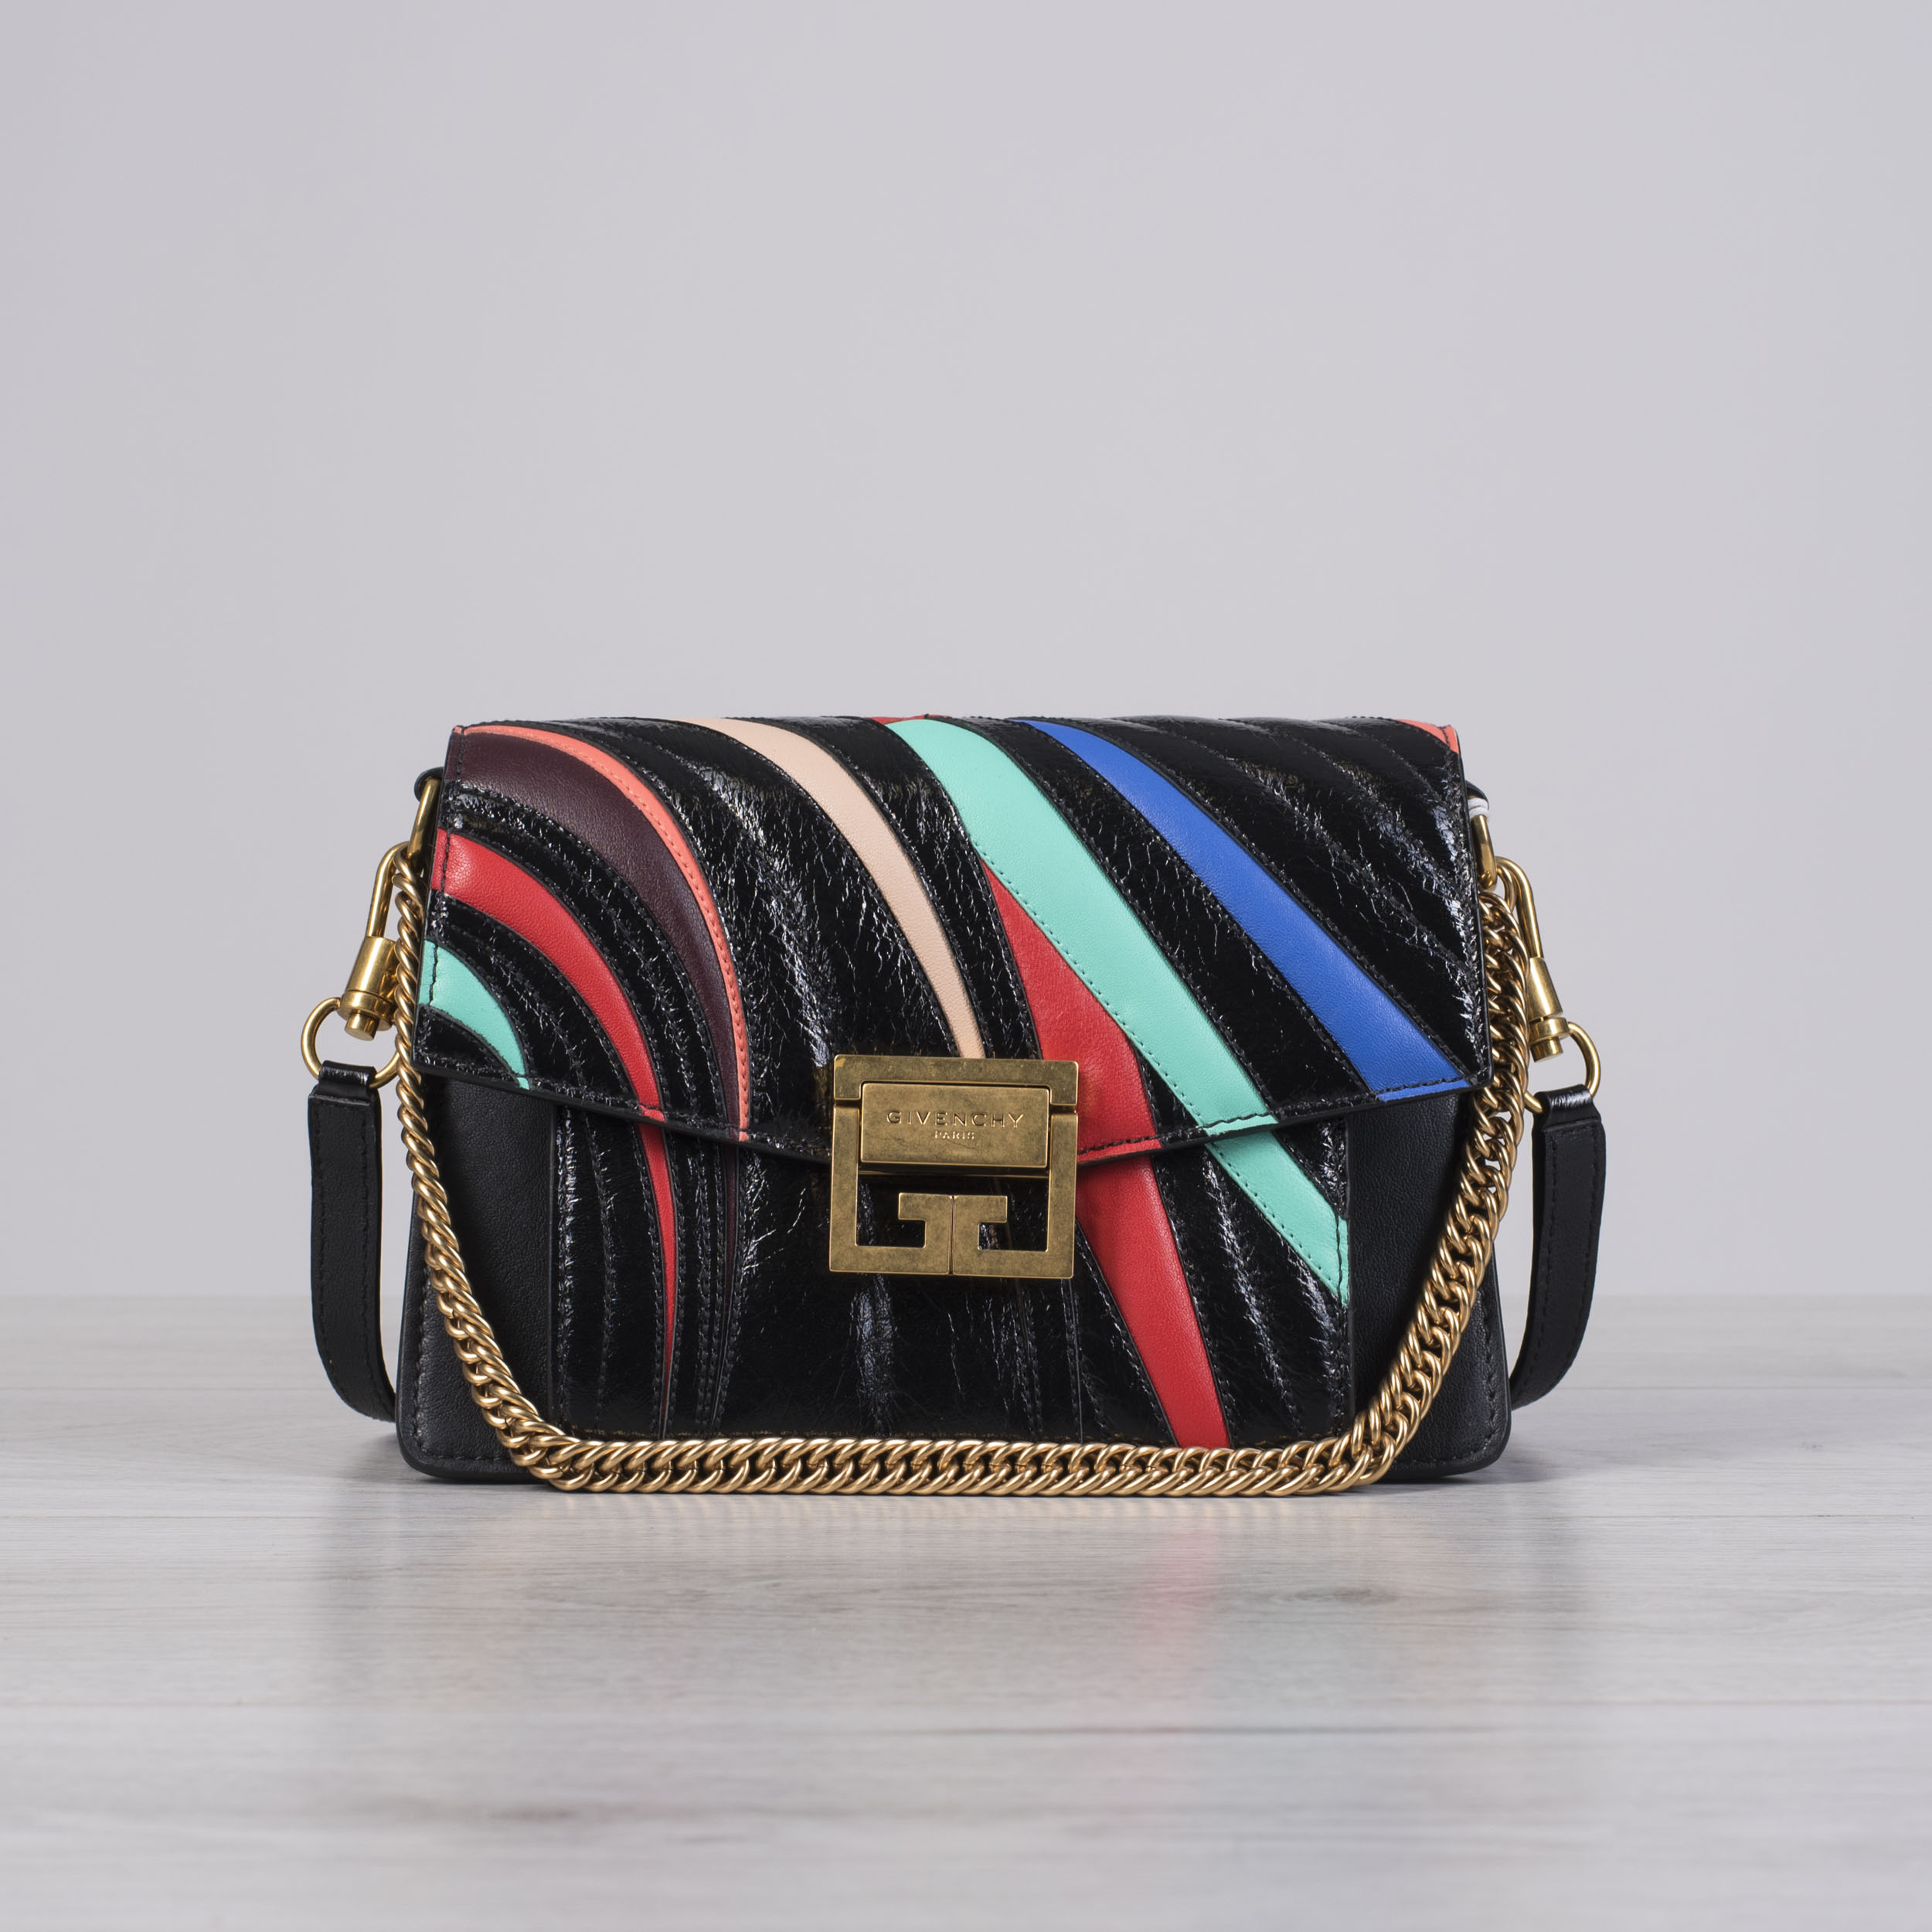 393fa25bf5 Details about GIVENCHY 3590$ Small GV3 Bag In Crackled Black Leather With  Multi Color Stripes